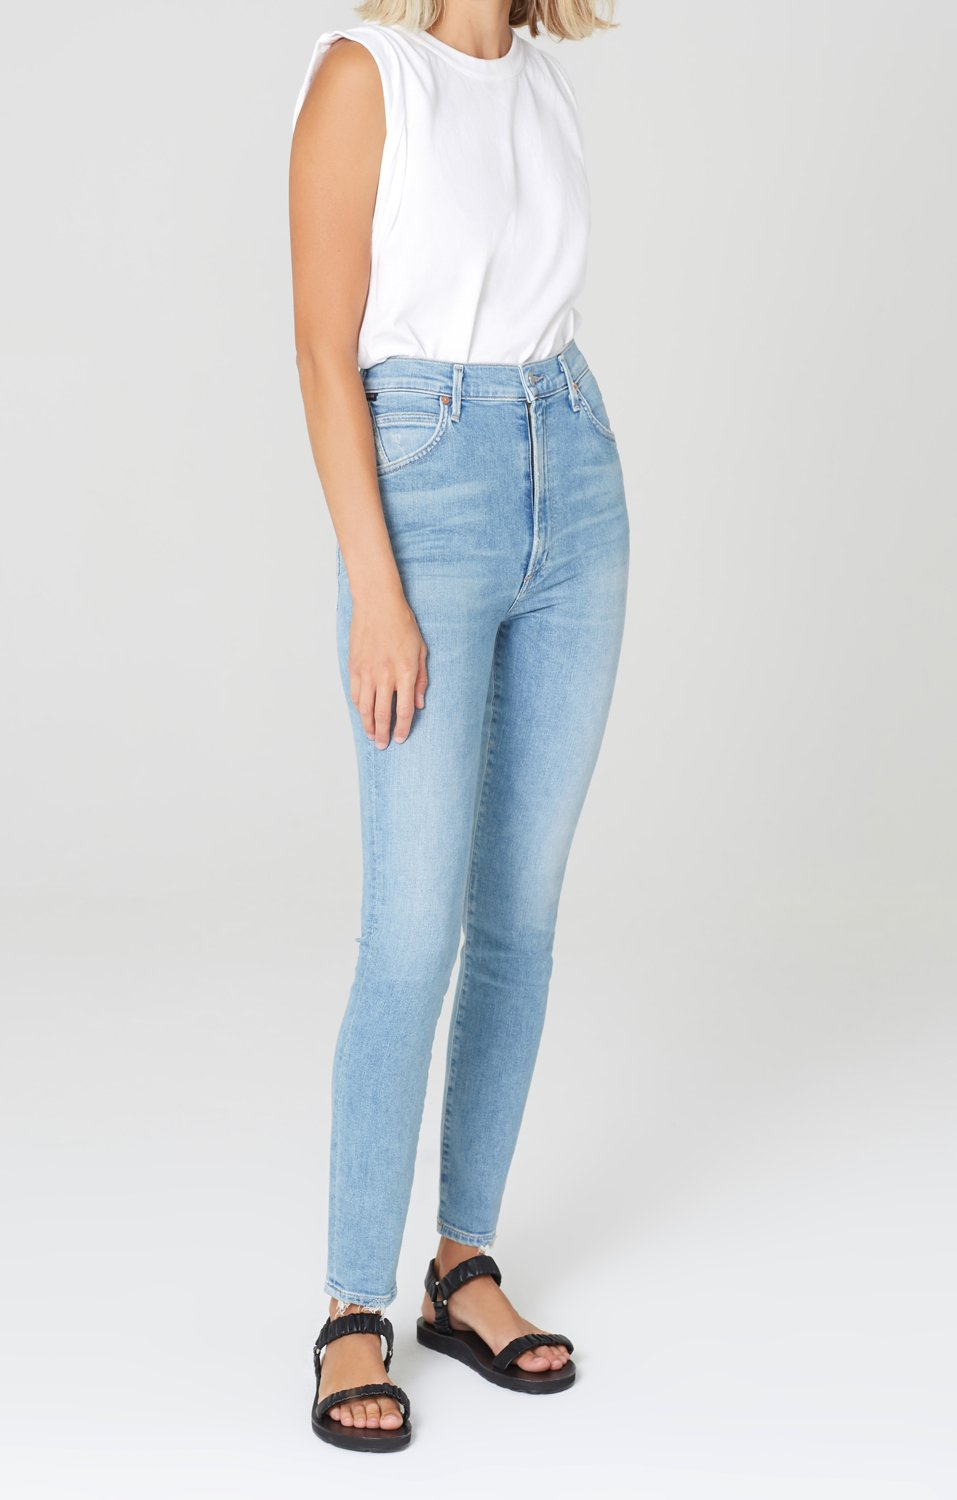 CITIZENS OF HUMANITY - CHRISSY HIGH RISE SKINNY FIT - ISLANDS